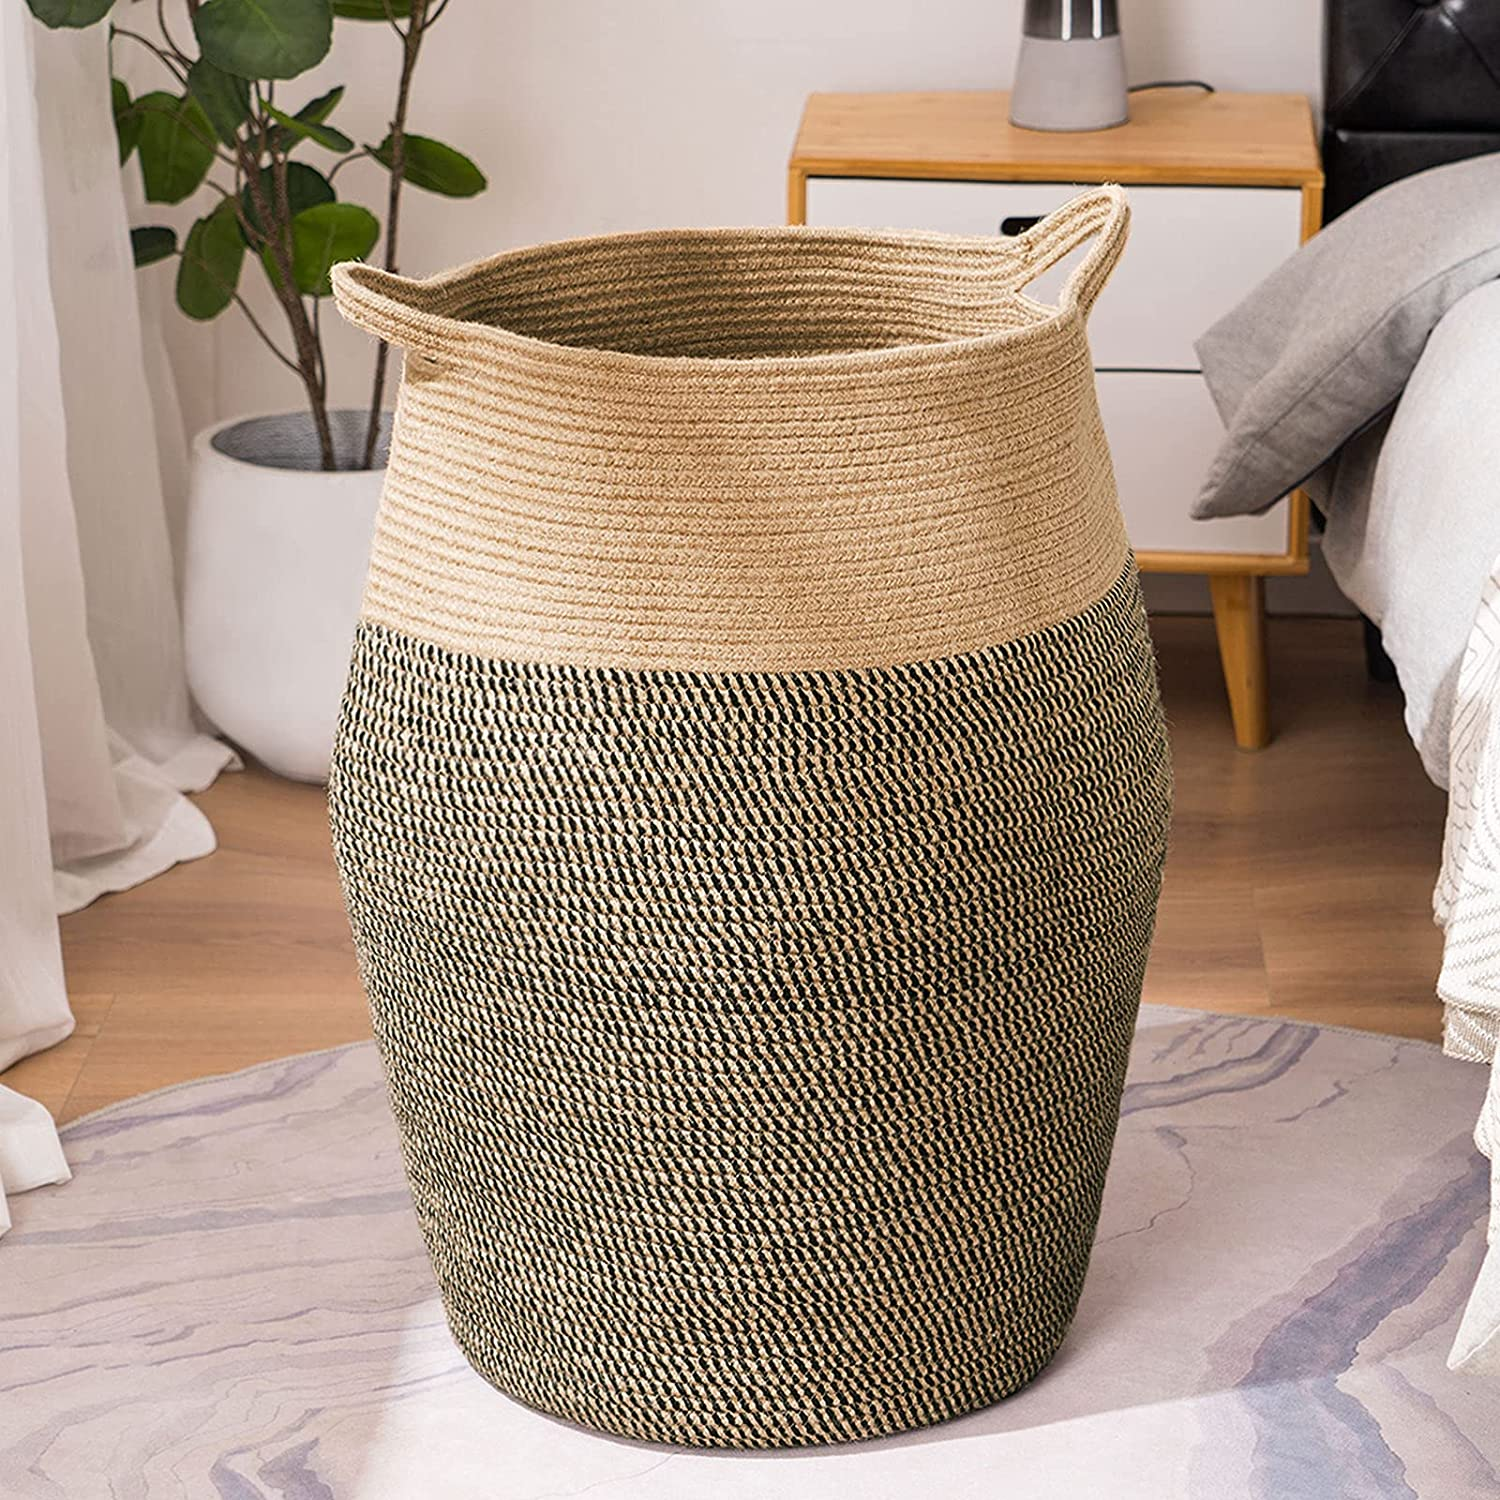 YOUDENOVA Tall Laundry Hamper Free shipping on posting reviews Woven Jute Max 85% OFF Laundr Rope Large Extra